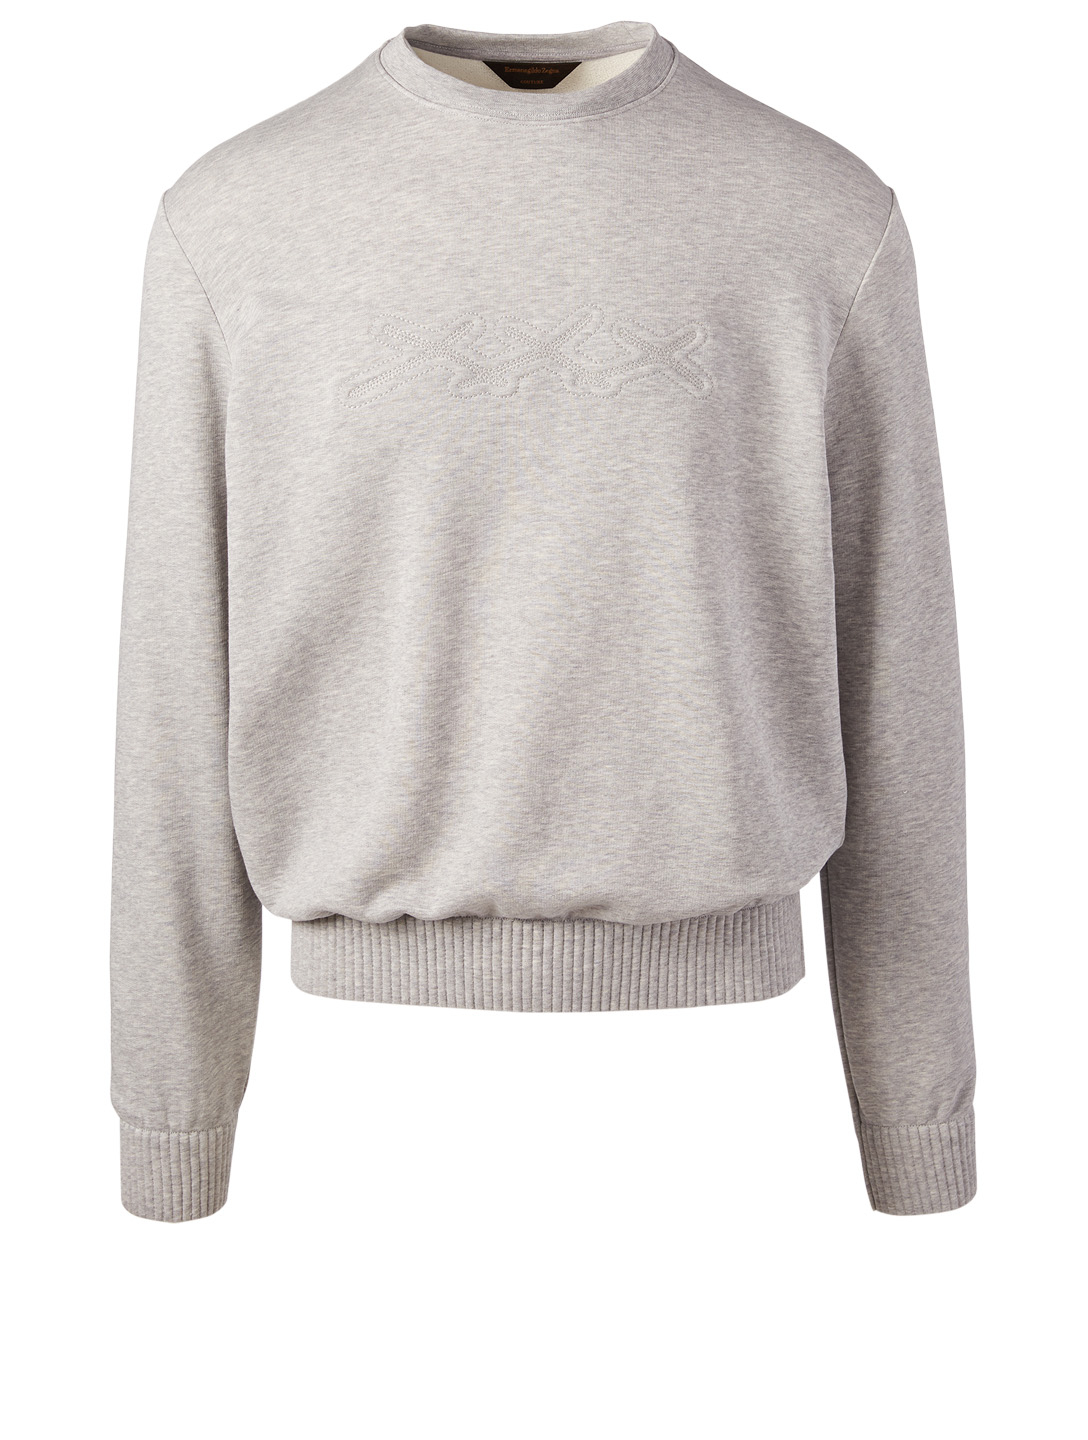 ERMENEGILDO ZEGNA XXX Sweatshirt Men's Grey